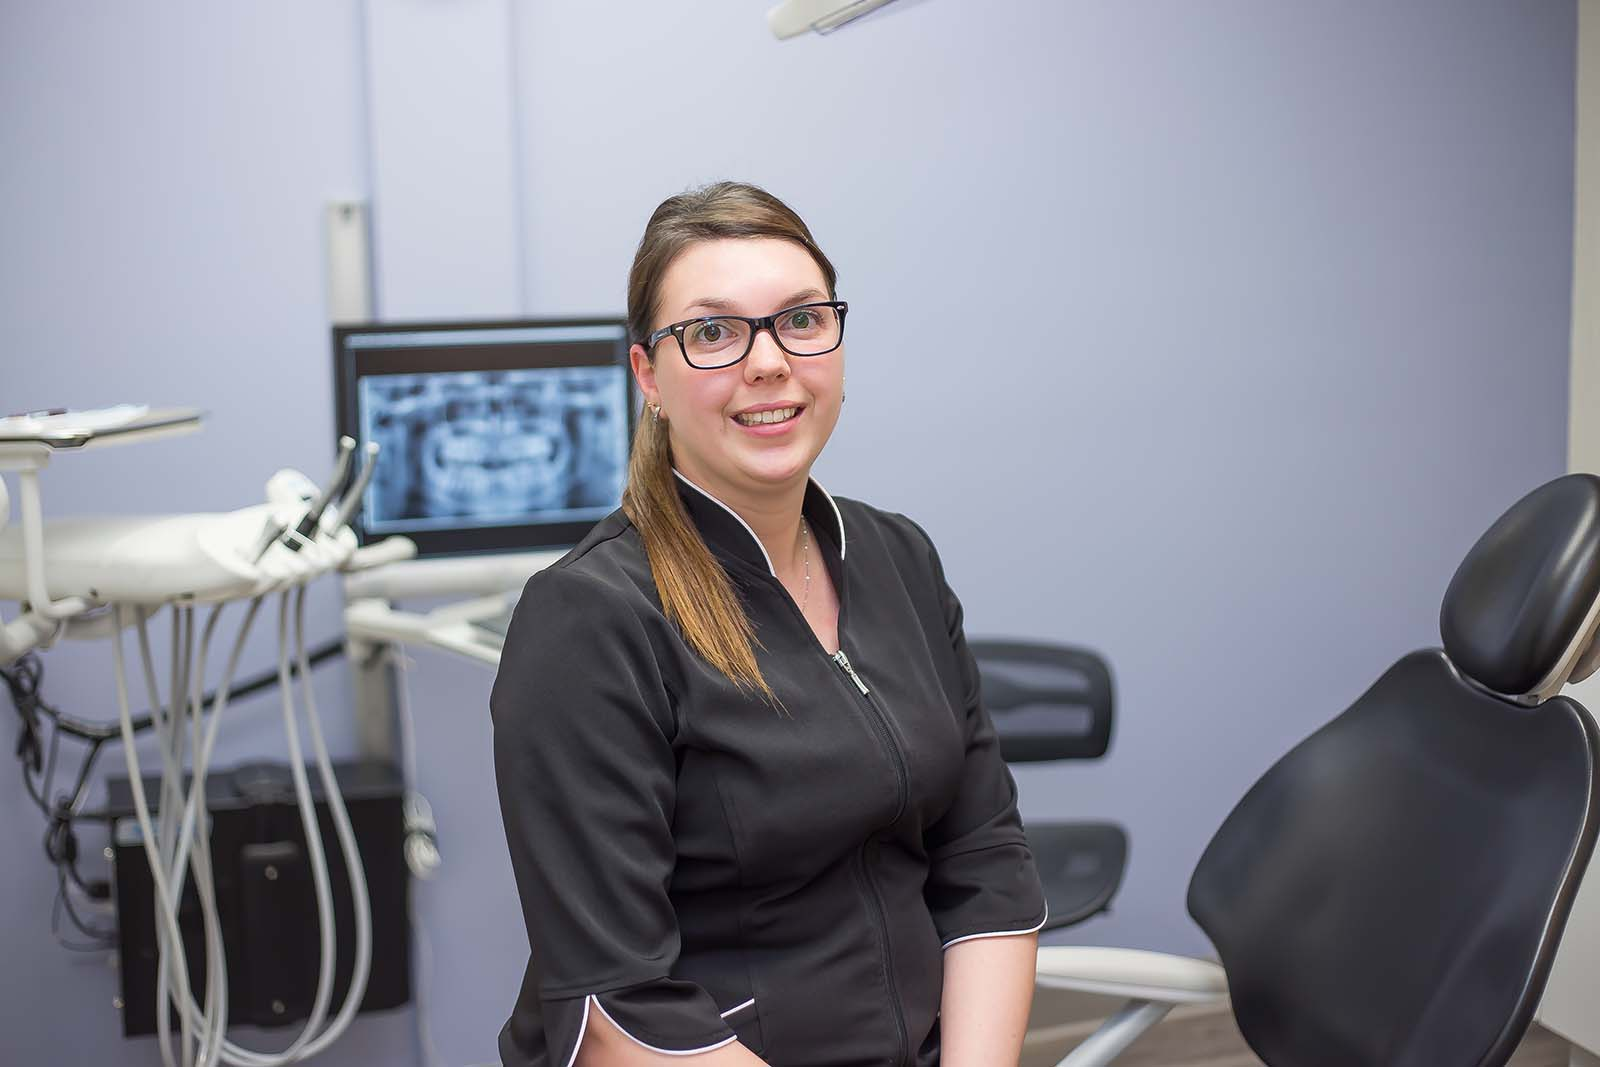 https://www.dentistedrummondville.com/wp-content/uploads/2015/12/Stephanie-Hygieniste-dentaire.jpg